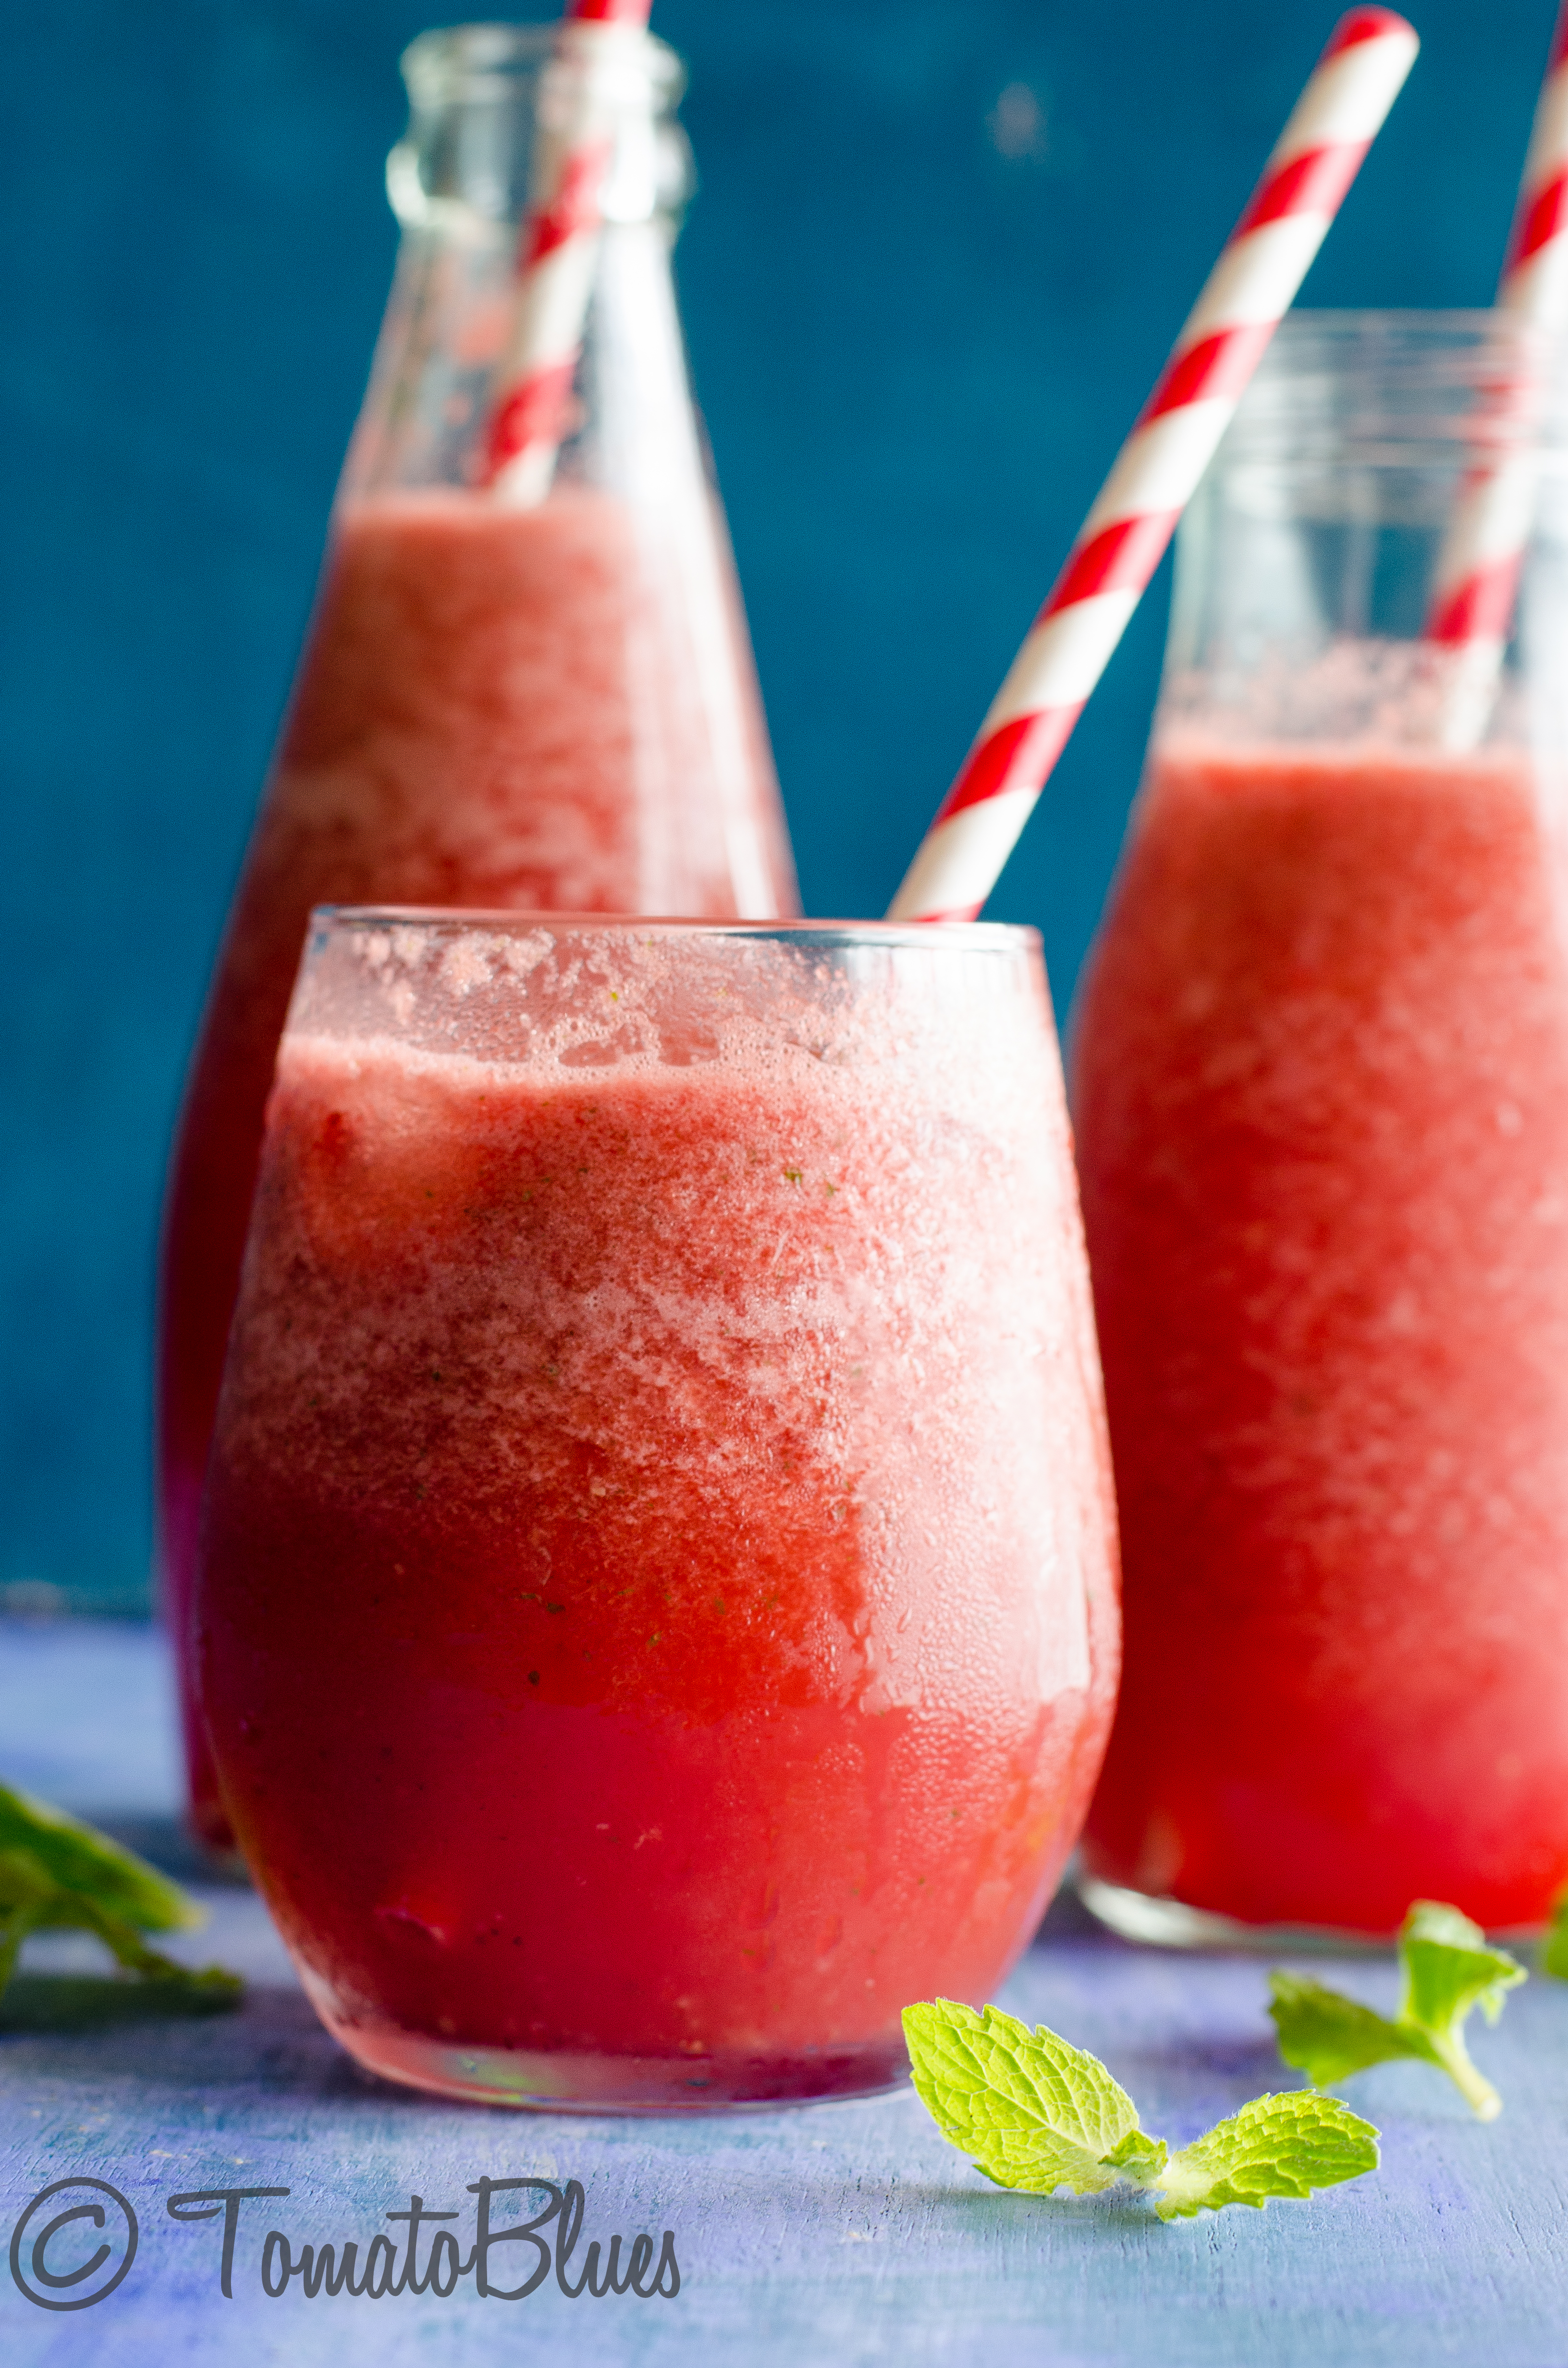 mexican watermelon agua fresca served in glasses and bottles with red and white straws